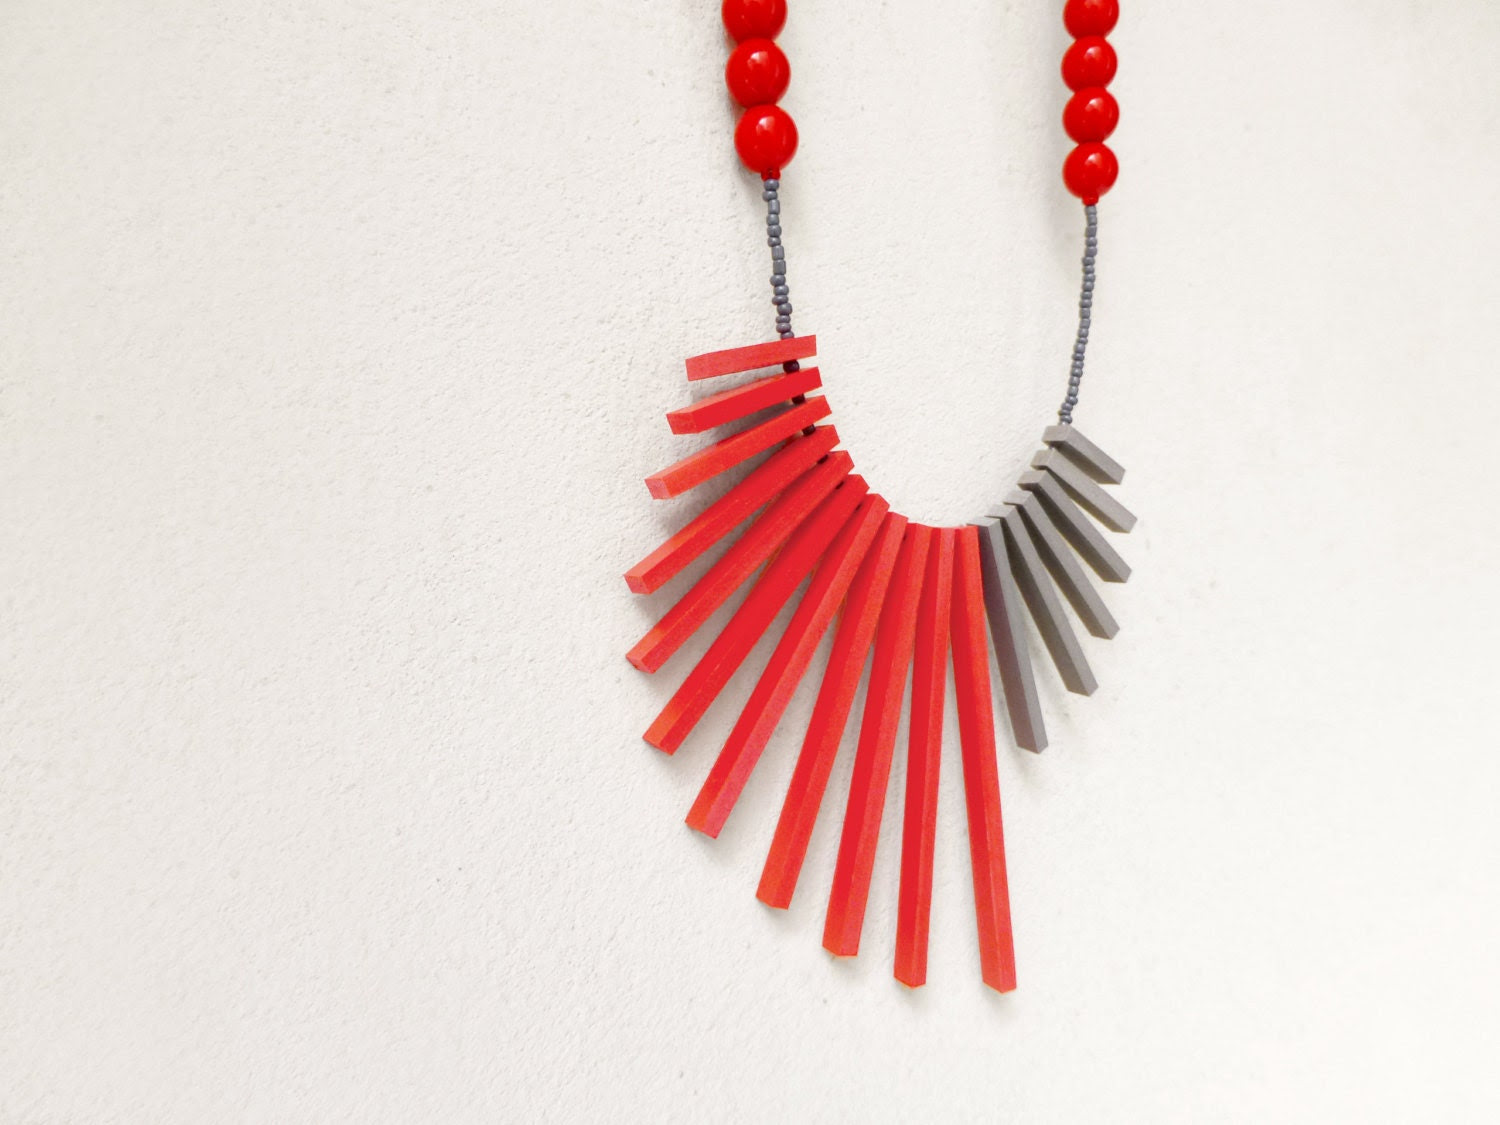 tribal asymmetric minimal necklace with red and grey sticks and beads - contemporary jewelry - pergamondo